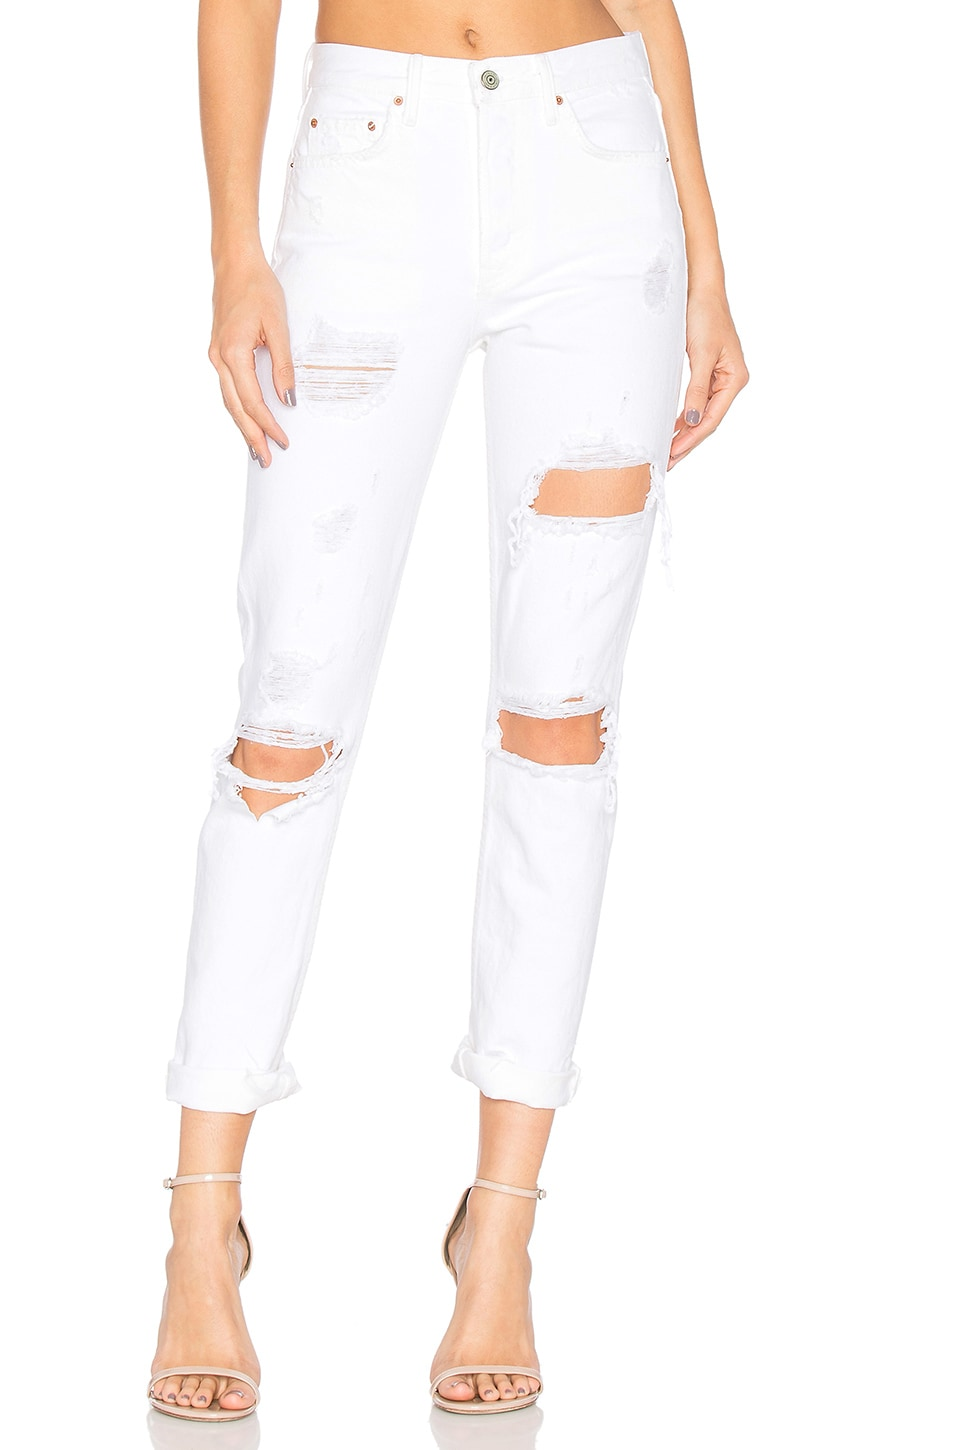 GRLFRND Karolina High-Rise Skinny Jean in You Know I'm No Good